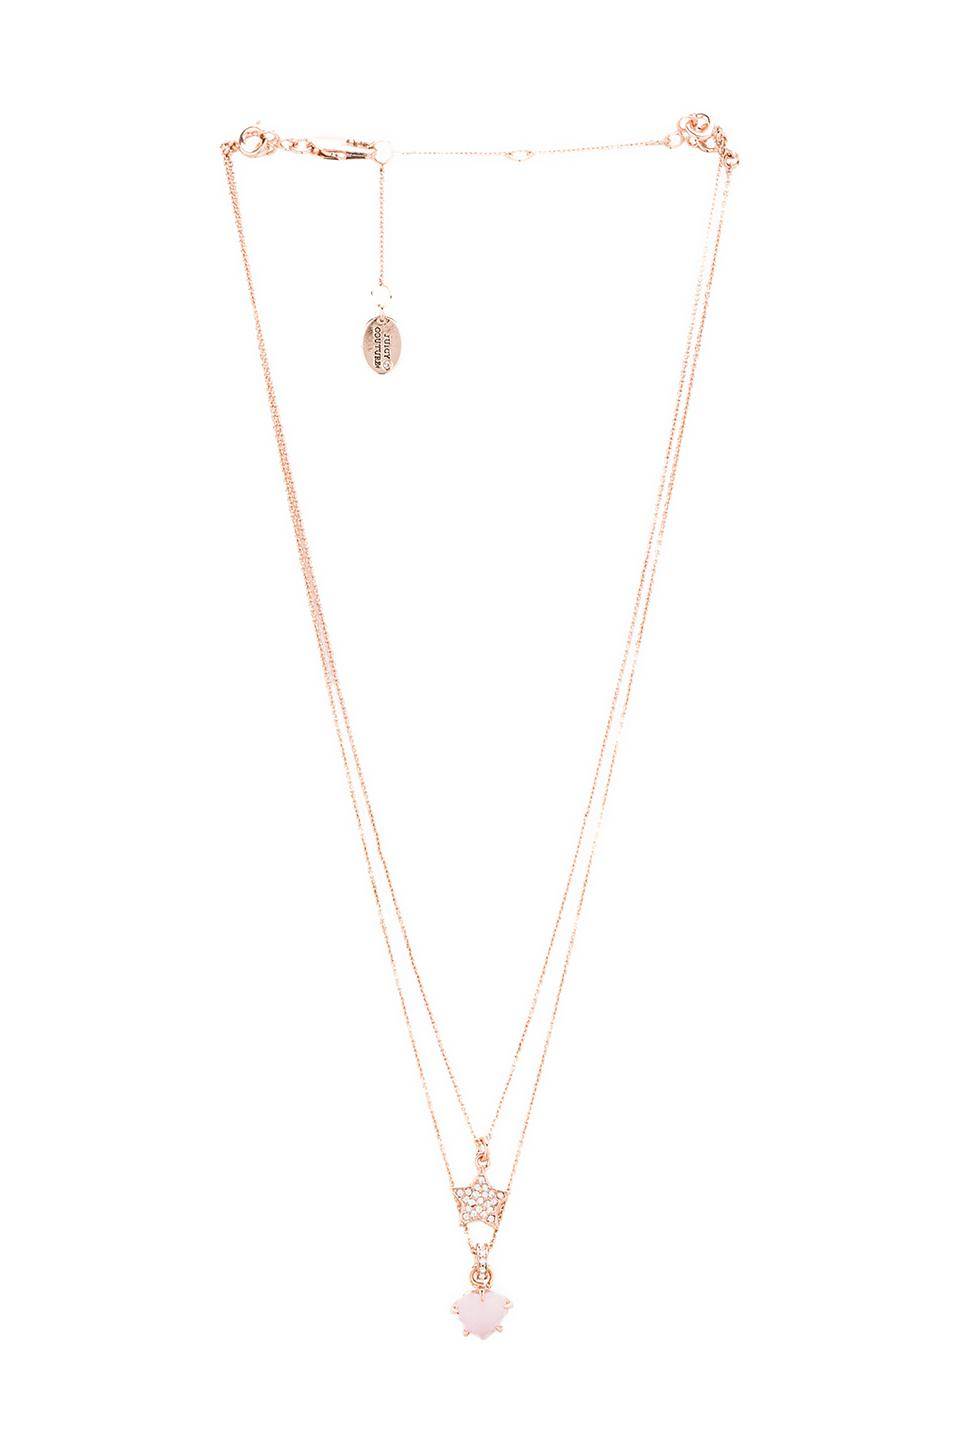 Juicy Couture Double Layer Pave Star Necklace In Rose Gold | Revolve With Regard To Best And Newest Pavé Star Locket Element Necklaces (View 8 of 25)